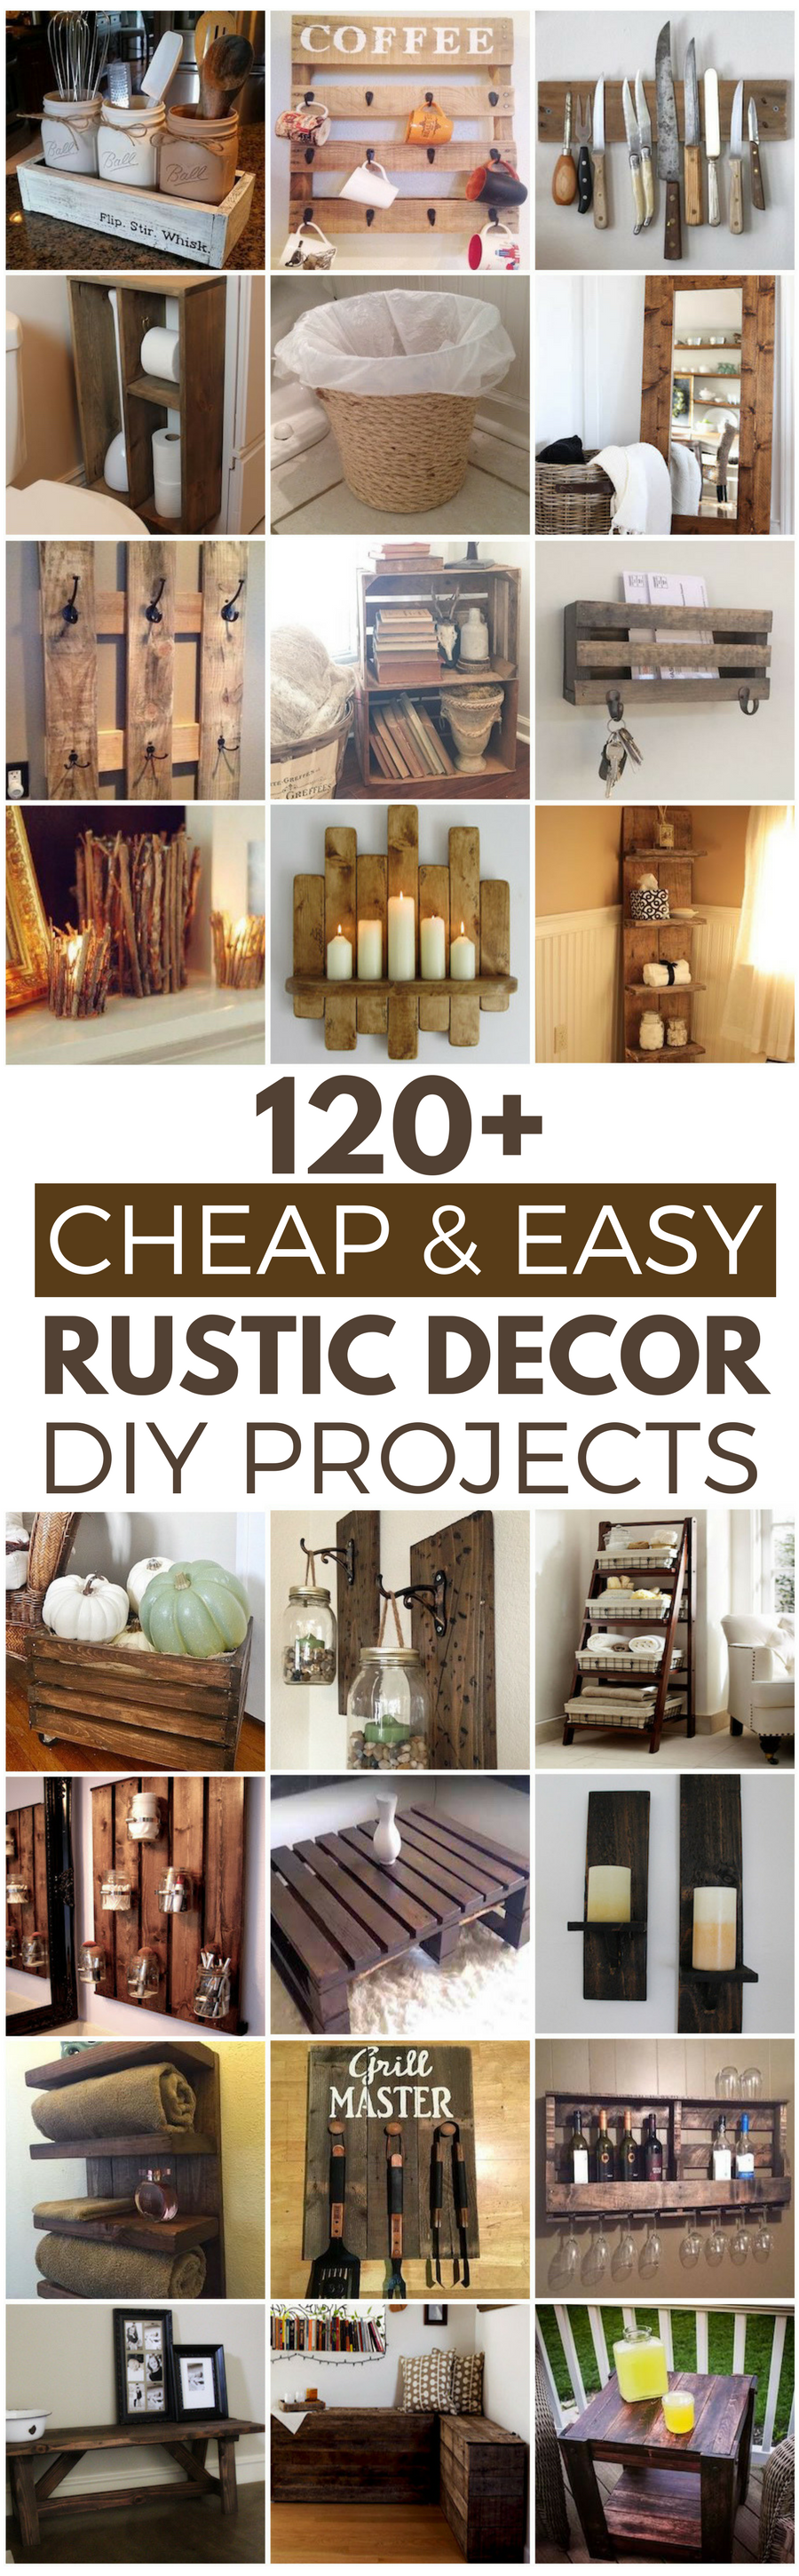 Exceptional 120 Cheap And Easy Rustic DIY Home Decor Ideas